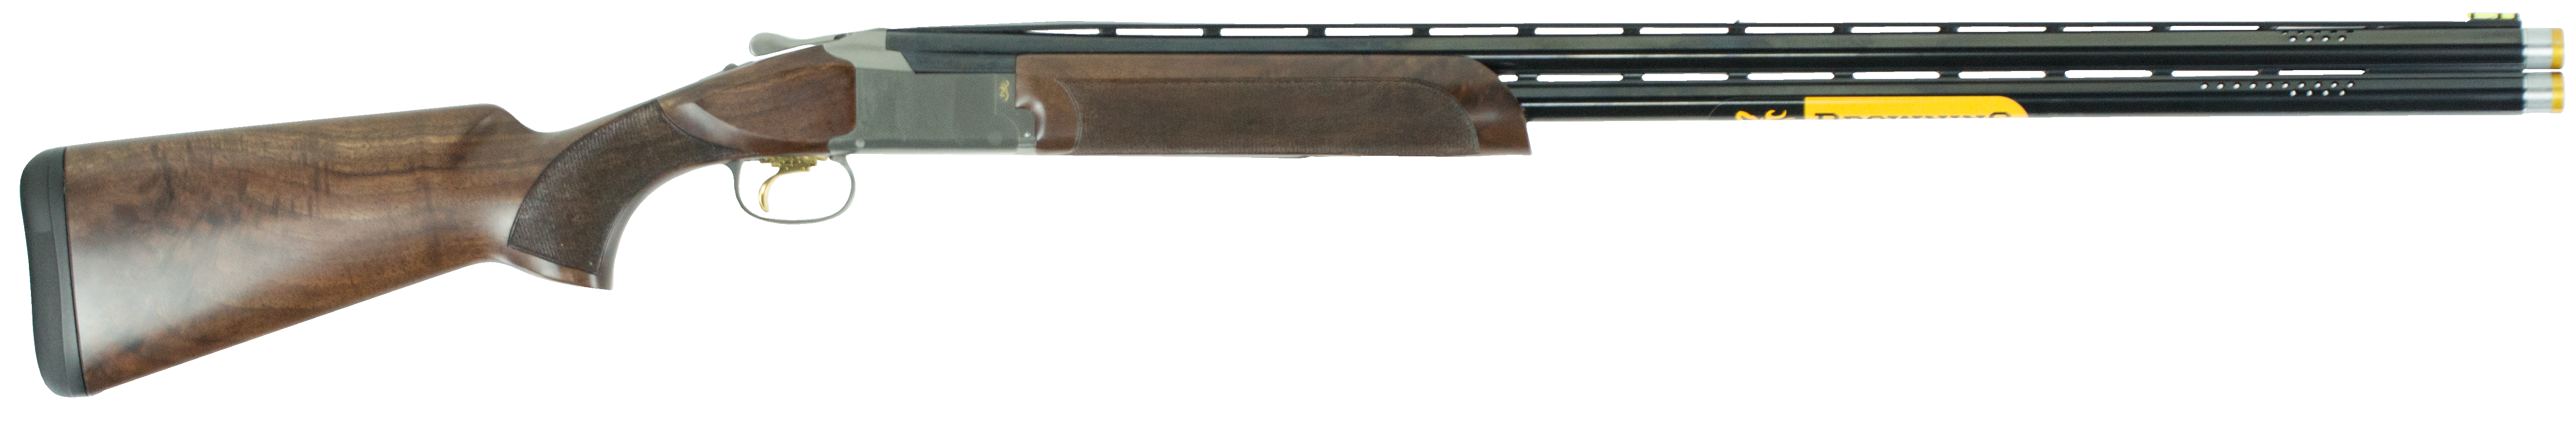 Browning Citori 725 Sporting Over/Under Shotgun 3'' 12 Gauge 32'' Silver Nitride Steel/Blued Barrel - Grade III Gloss/Grade IV Walnut